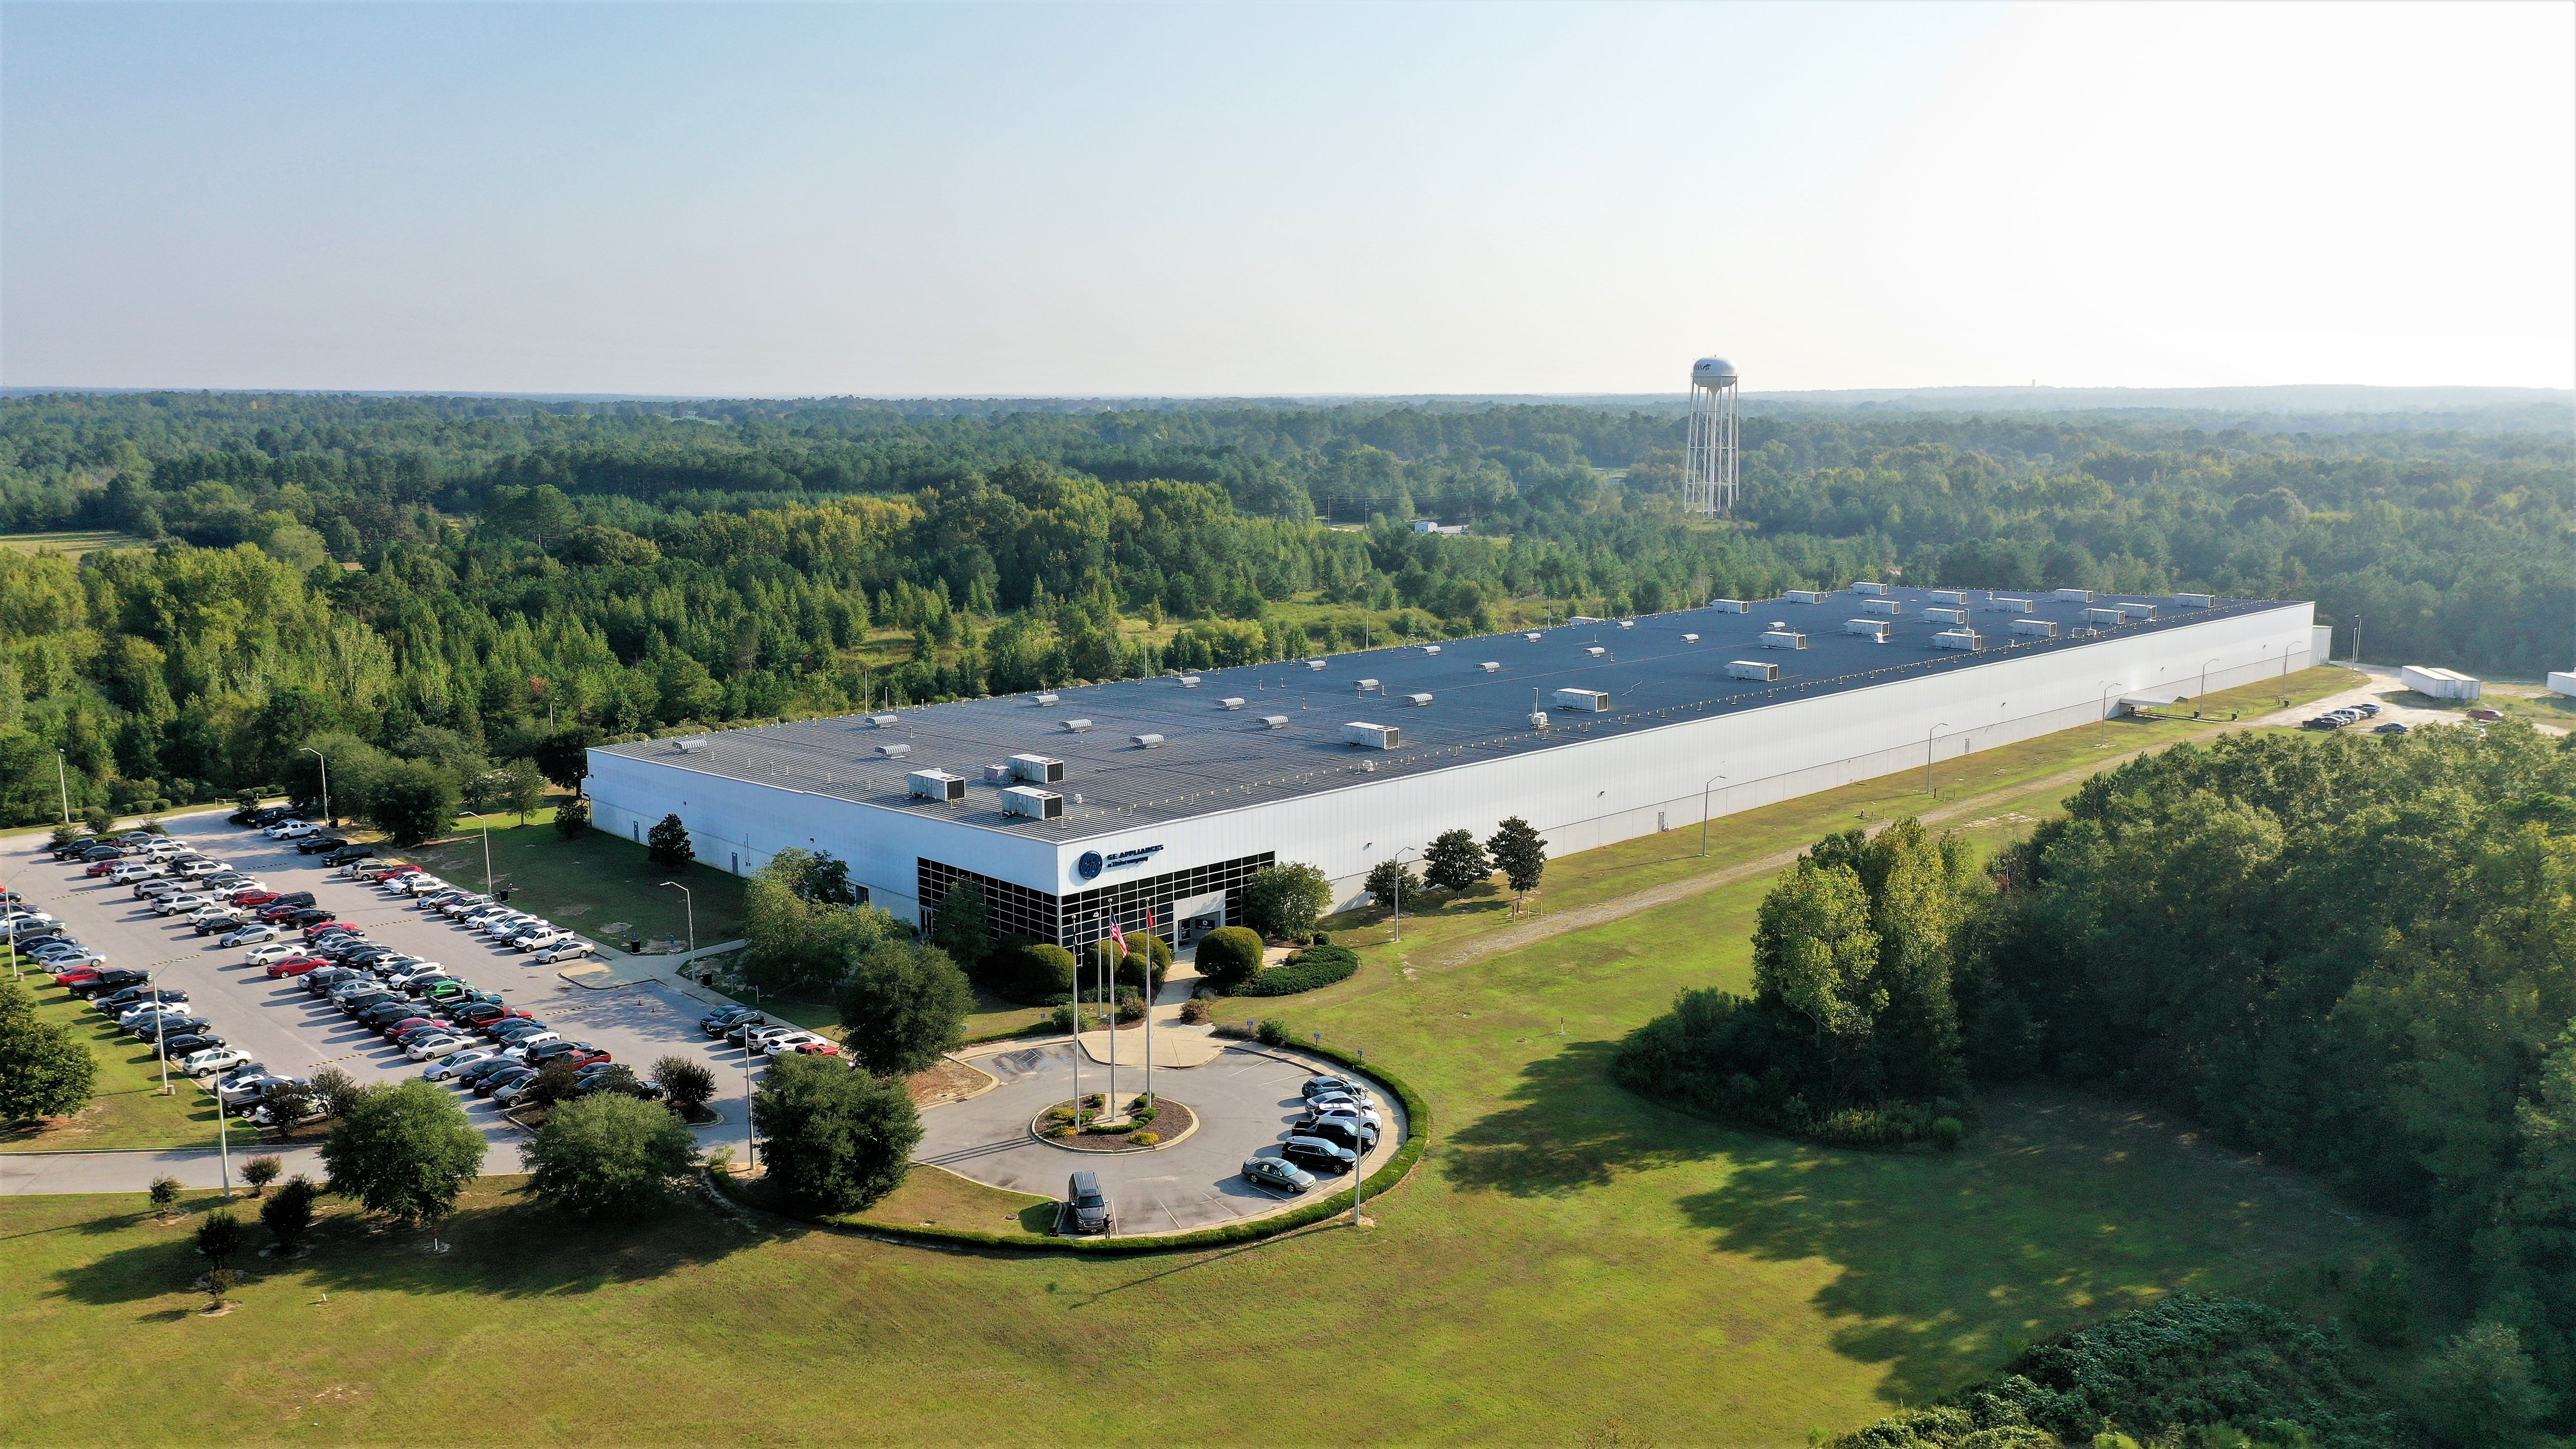 Ge Appliances Invests 60 Million To Begin Water Heater Manufacturing At Its Camden South Carolina Plant Ge Appliances Pressroom